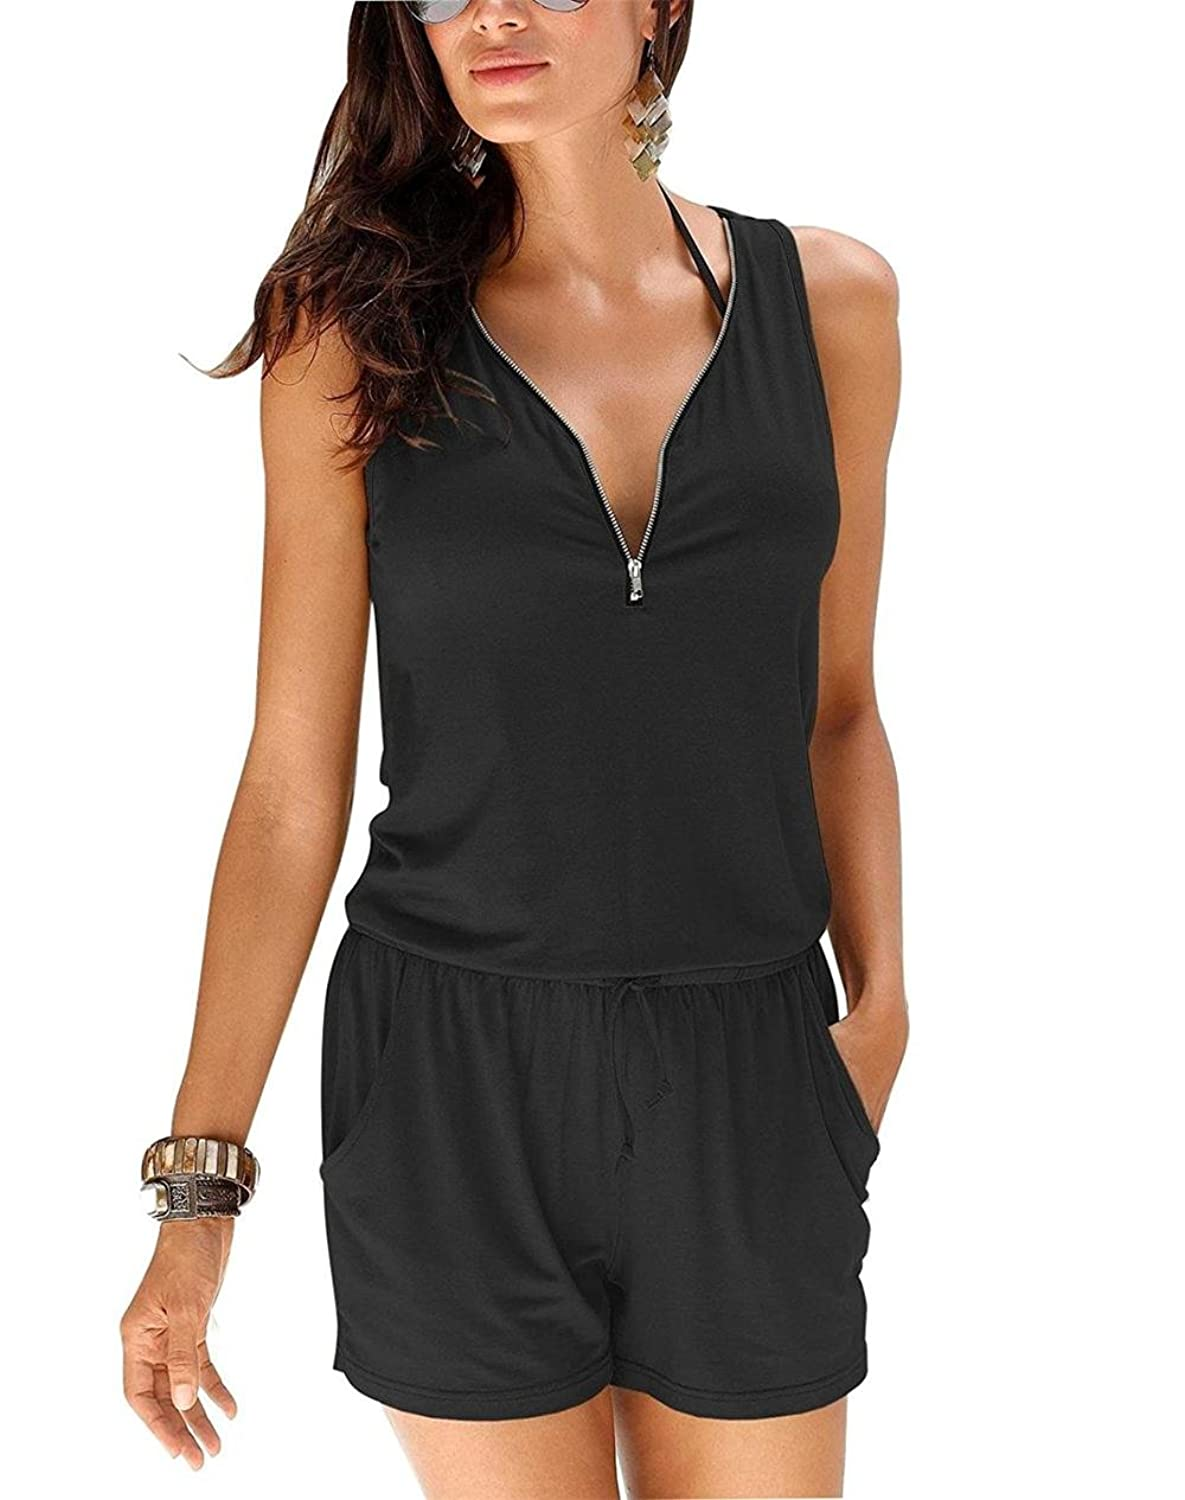 DBFACT Sexy Women Sleeveless Zipper V Neck Pocket Casual Jumpsuit Rompers Playsuit